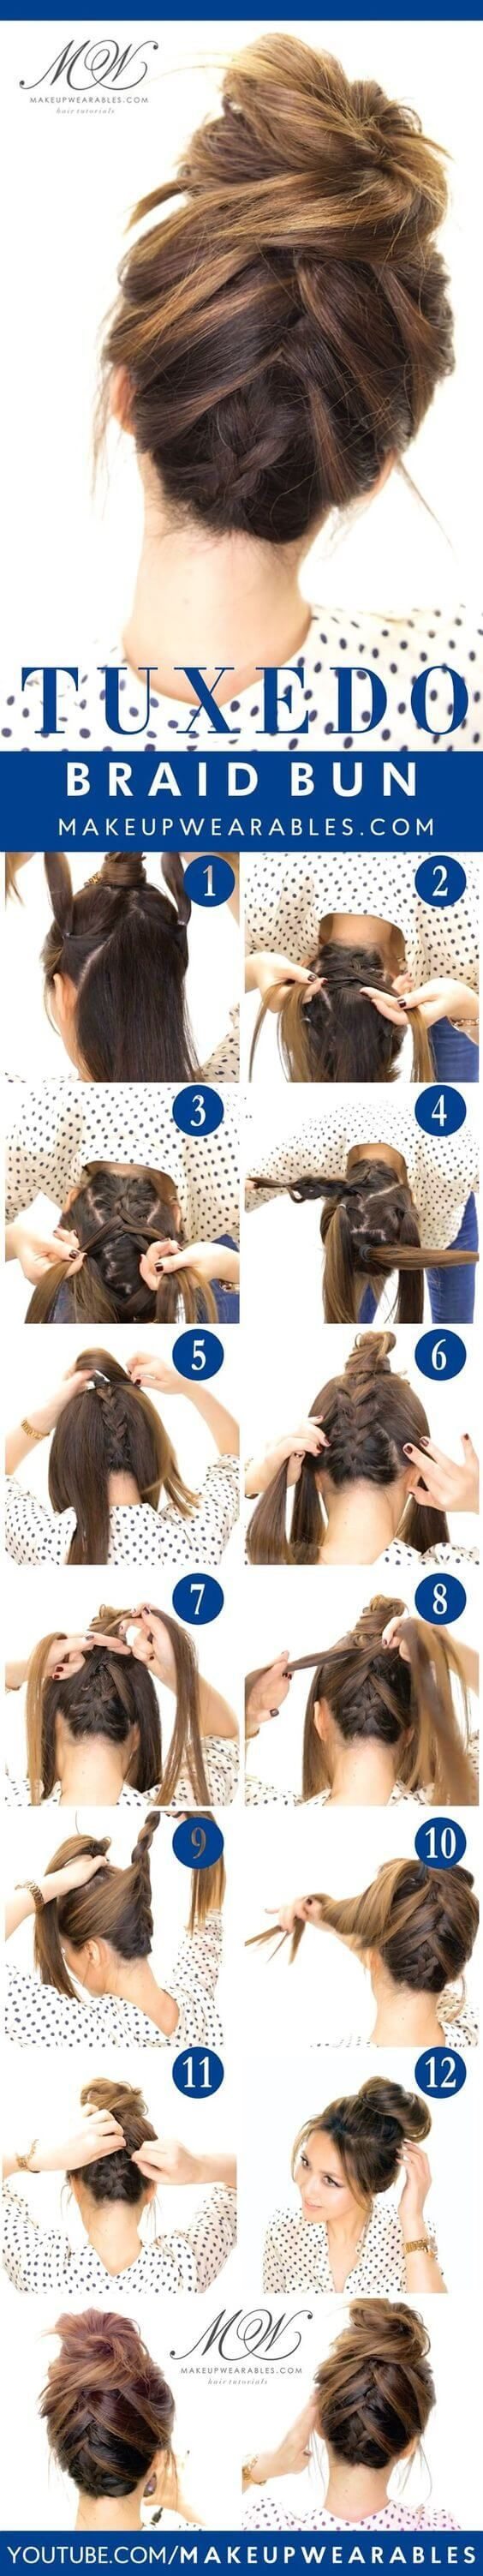 33 Most Popular Step By Step Hairstyle Tutorials